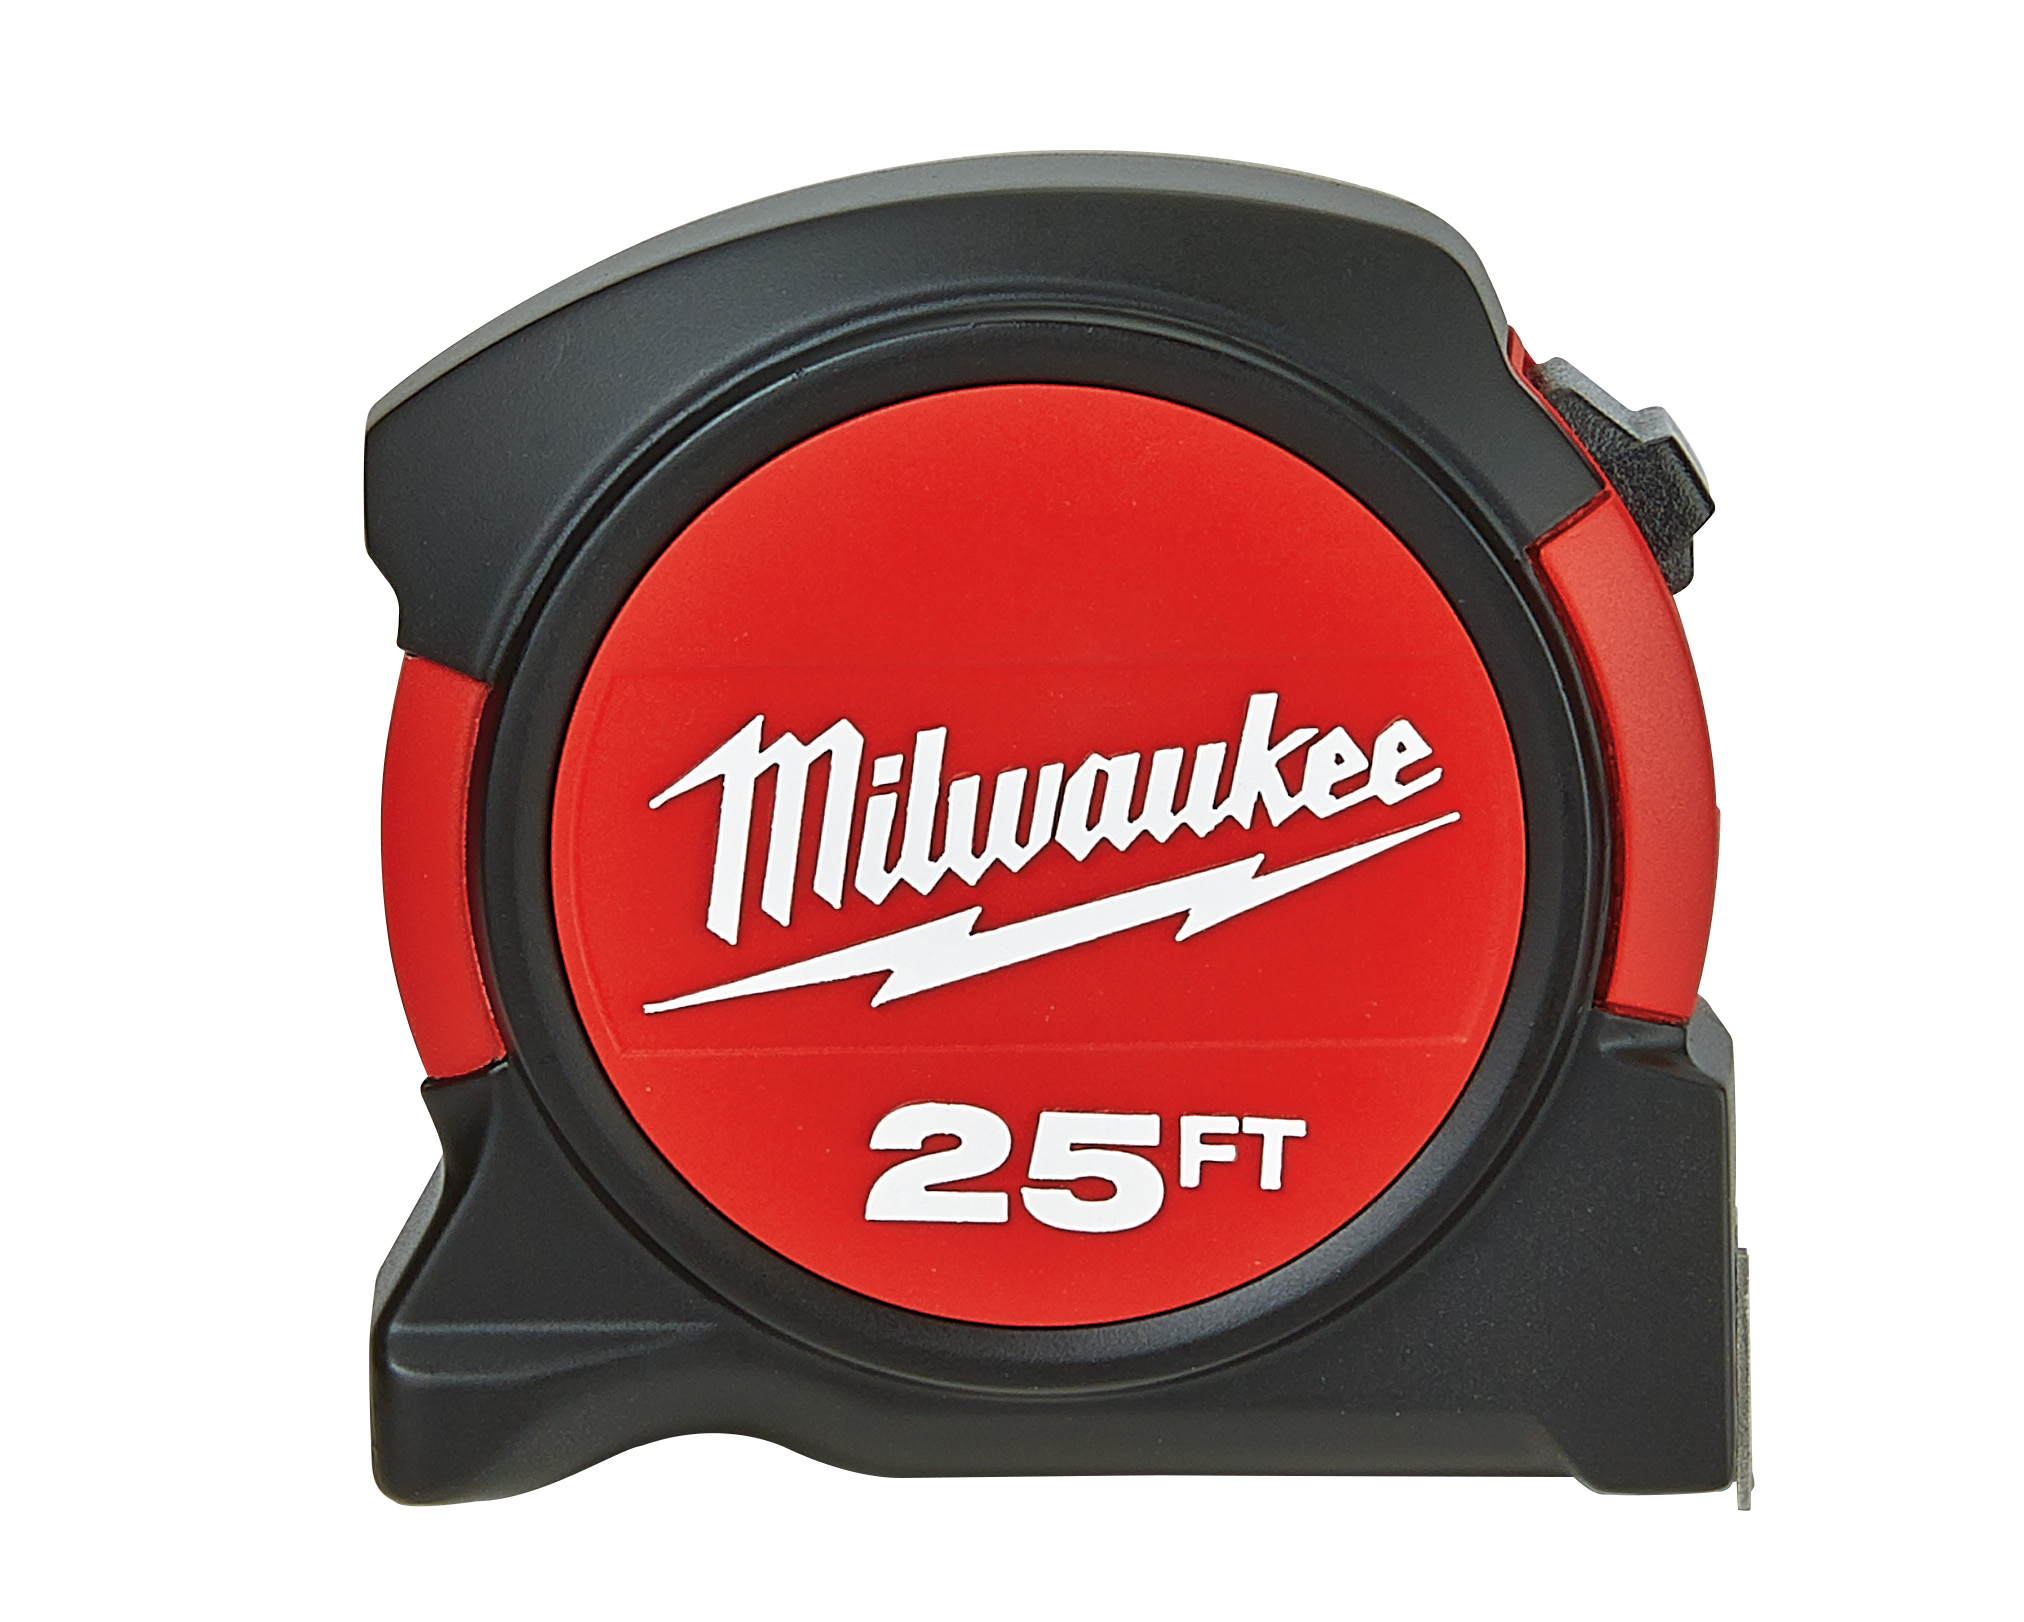 Milwaukee® 48-22-5525B General Contractor's Measuring Tape With Belt Clip, 25 ft L x 2-1/4 in W Blade, Steel, Imperial